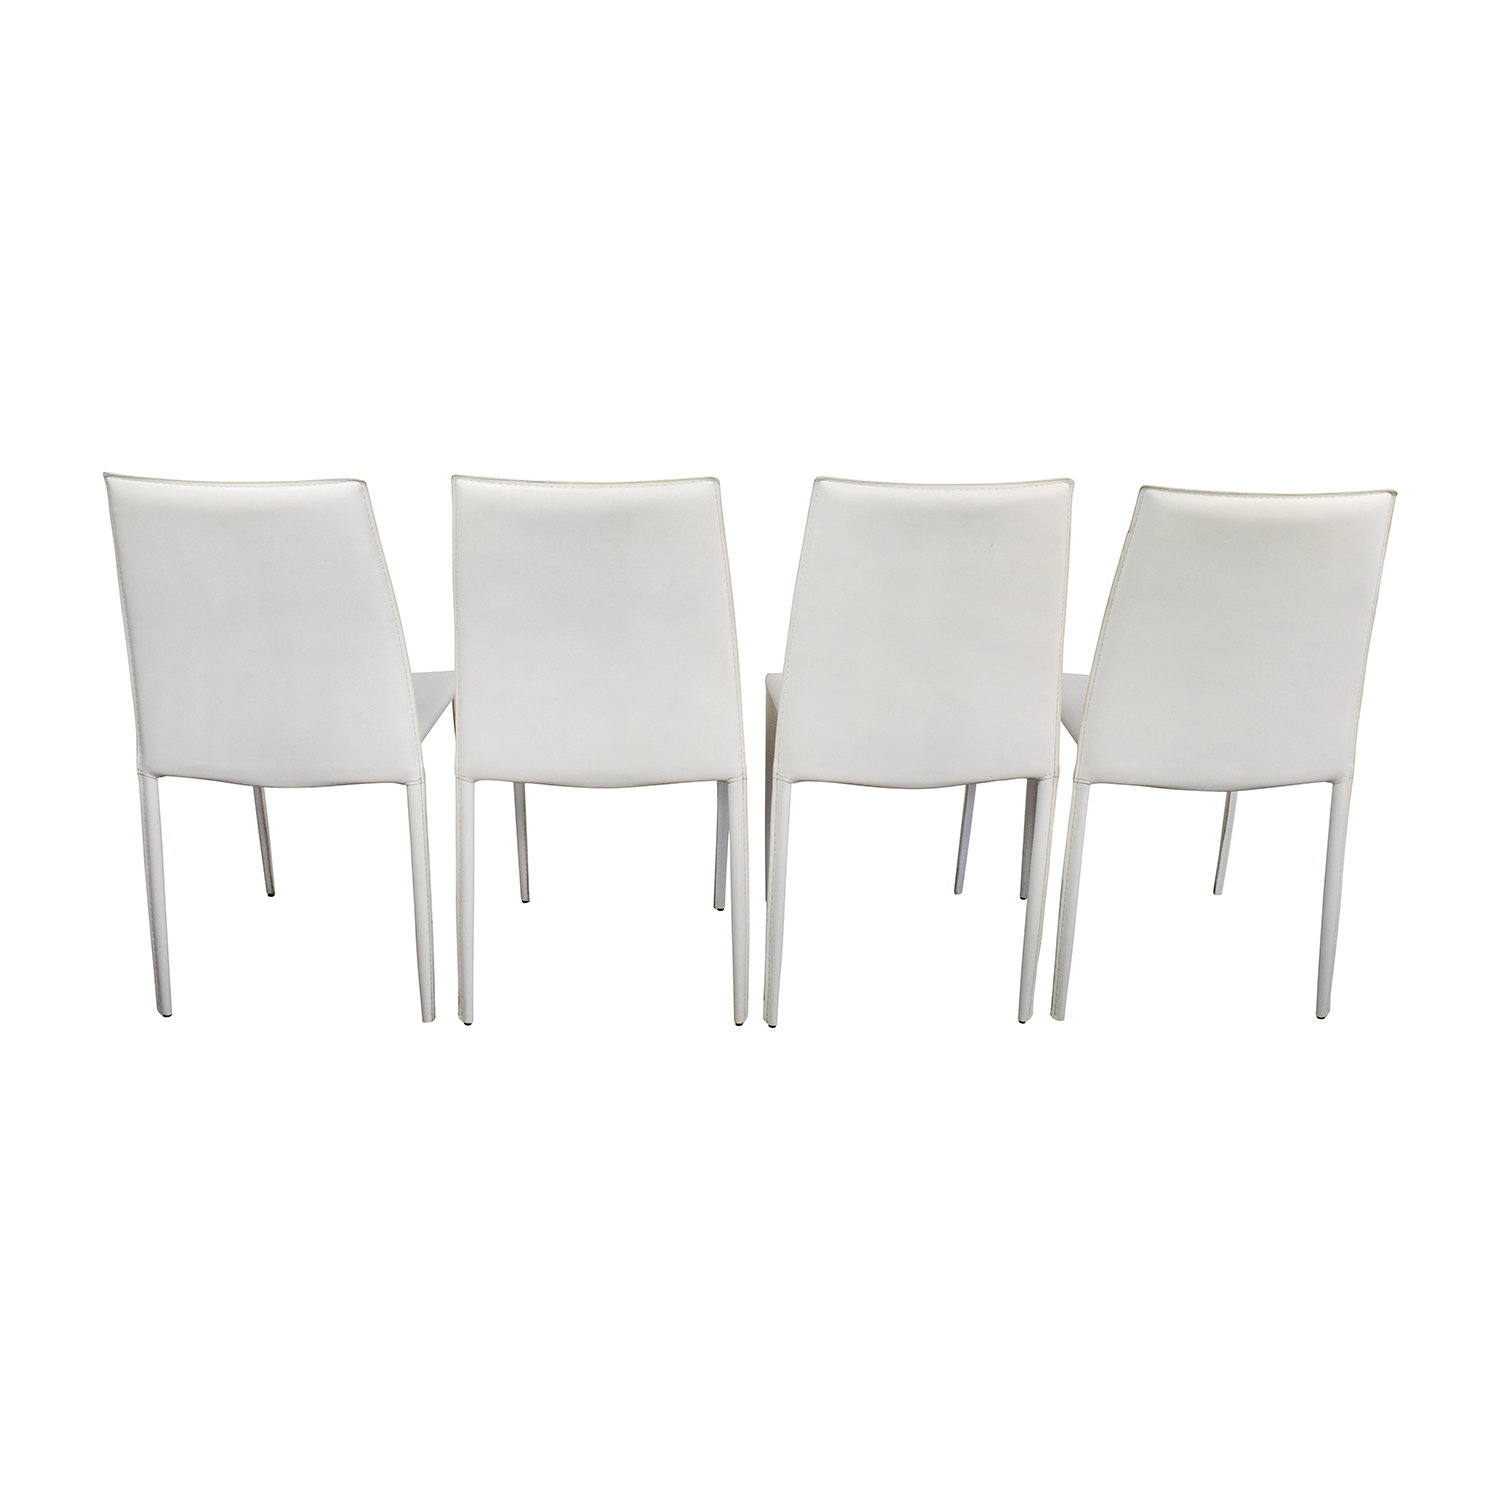 all modern leather dining chairs posture executive chair 77 off white